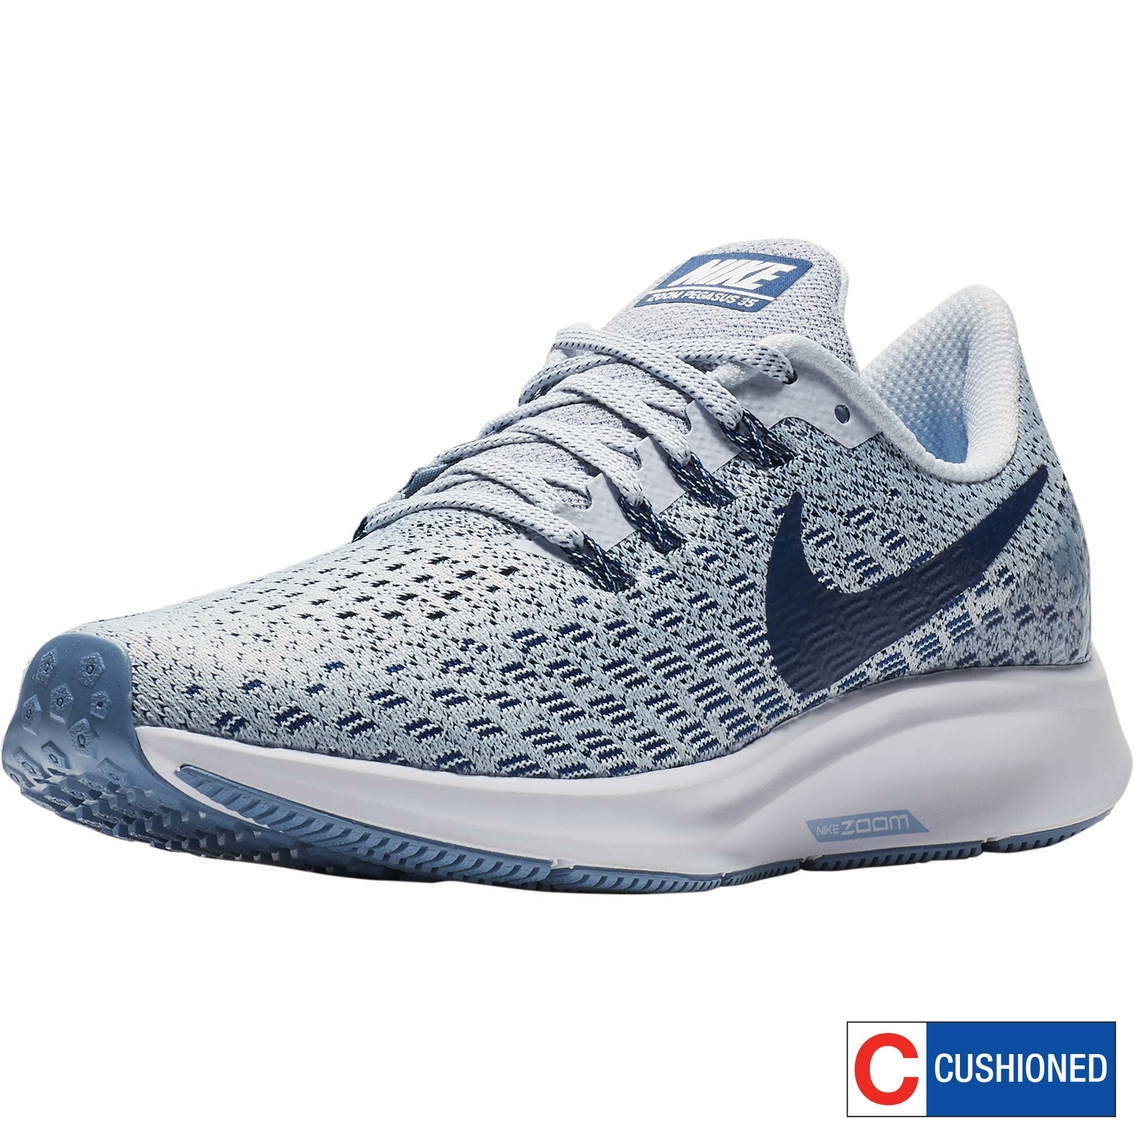 a5227bf2af34 Nike Women s Air Zoom Pegasus 35 Running Shoes